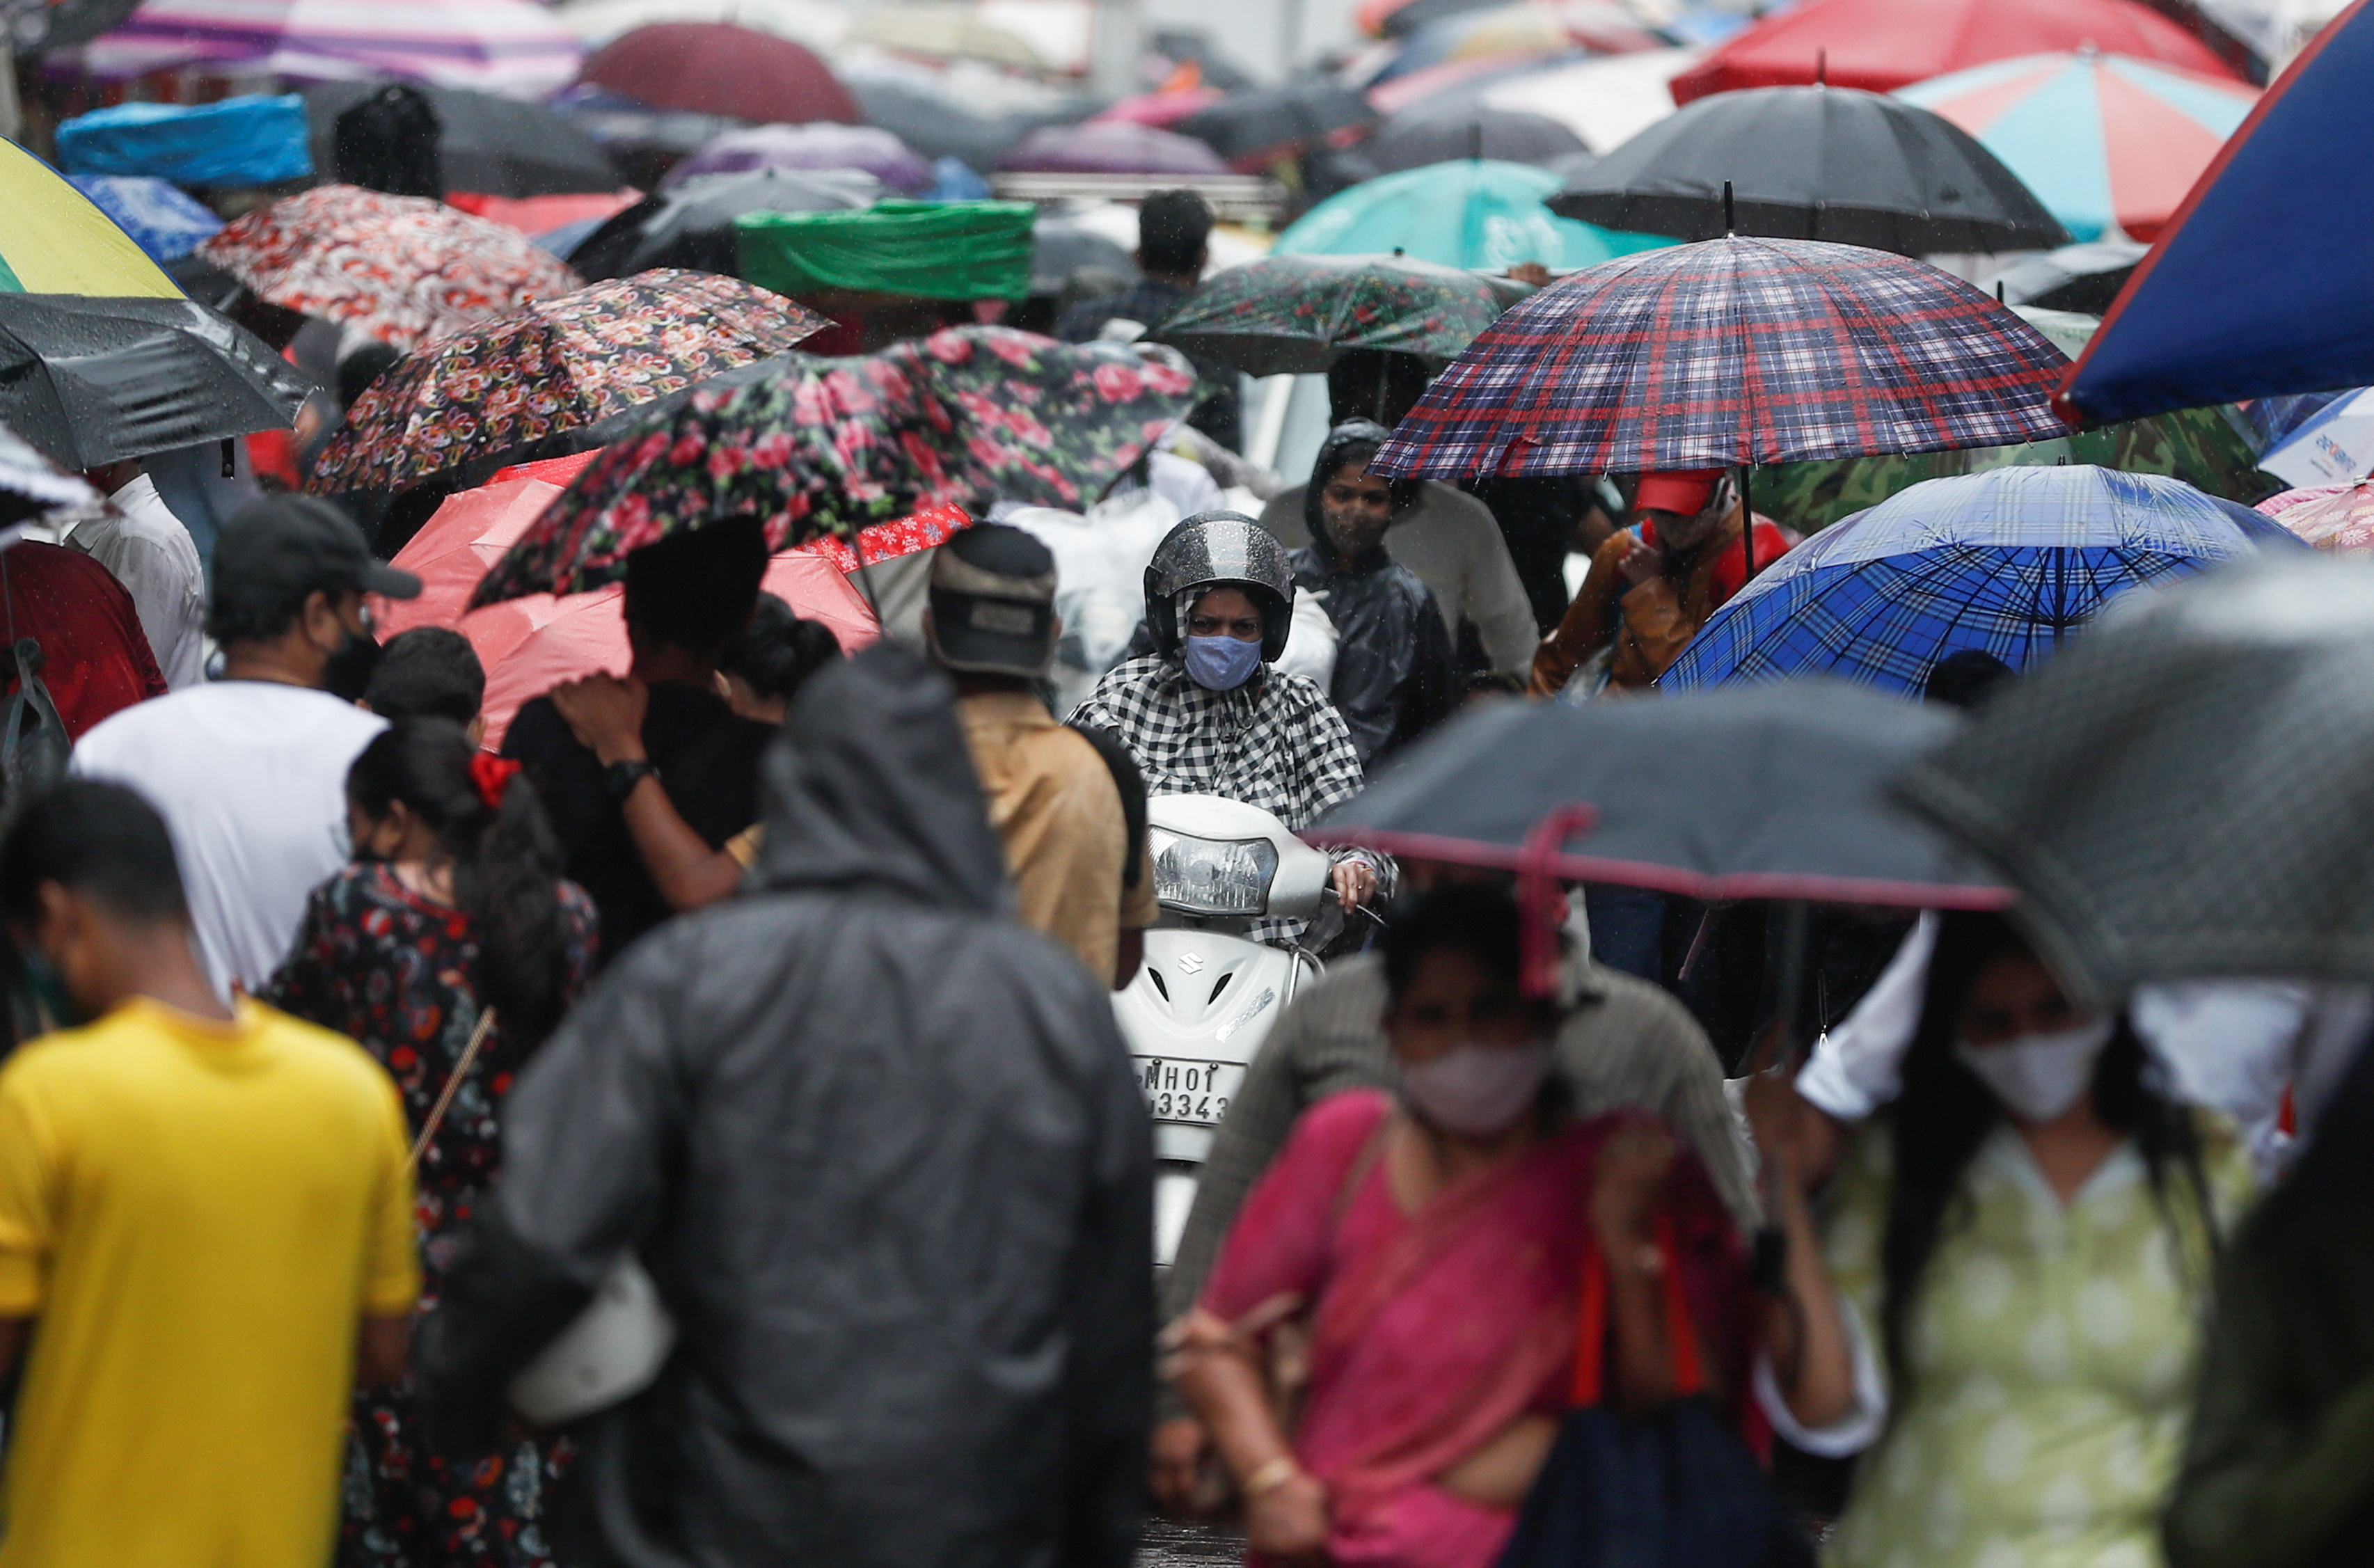 A woman rides a scooter through a crowded market on a rainy day amidst the spread of the coronavirus disease (COVID-19) in Mumbai, India, July 14, 2021. REUTERS/Francis Mascarenhas